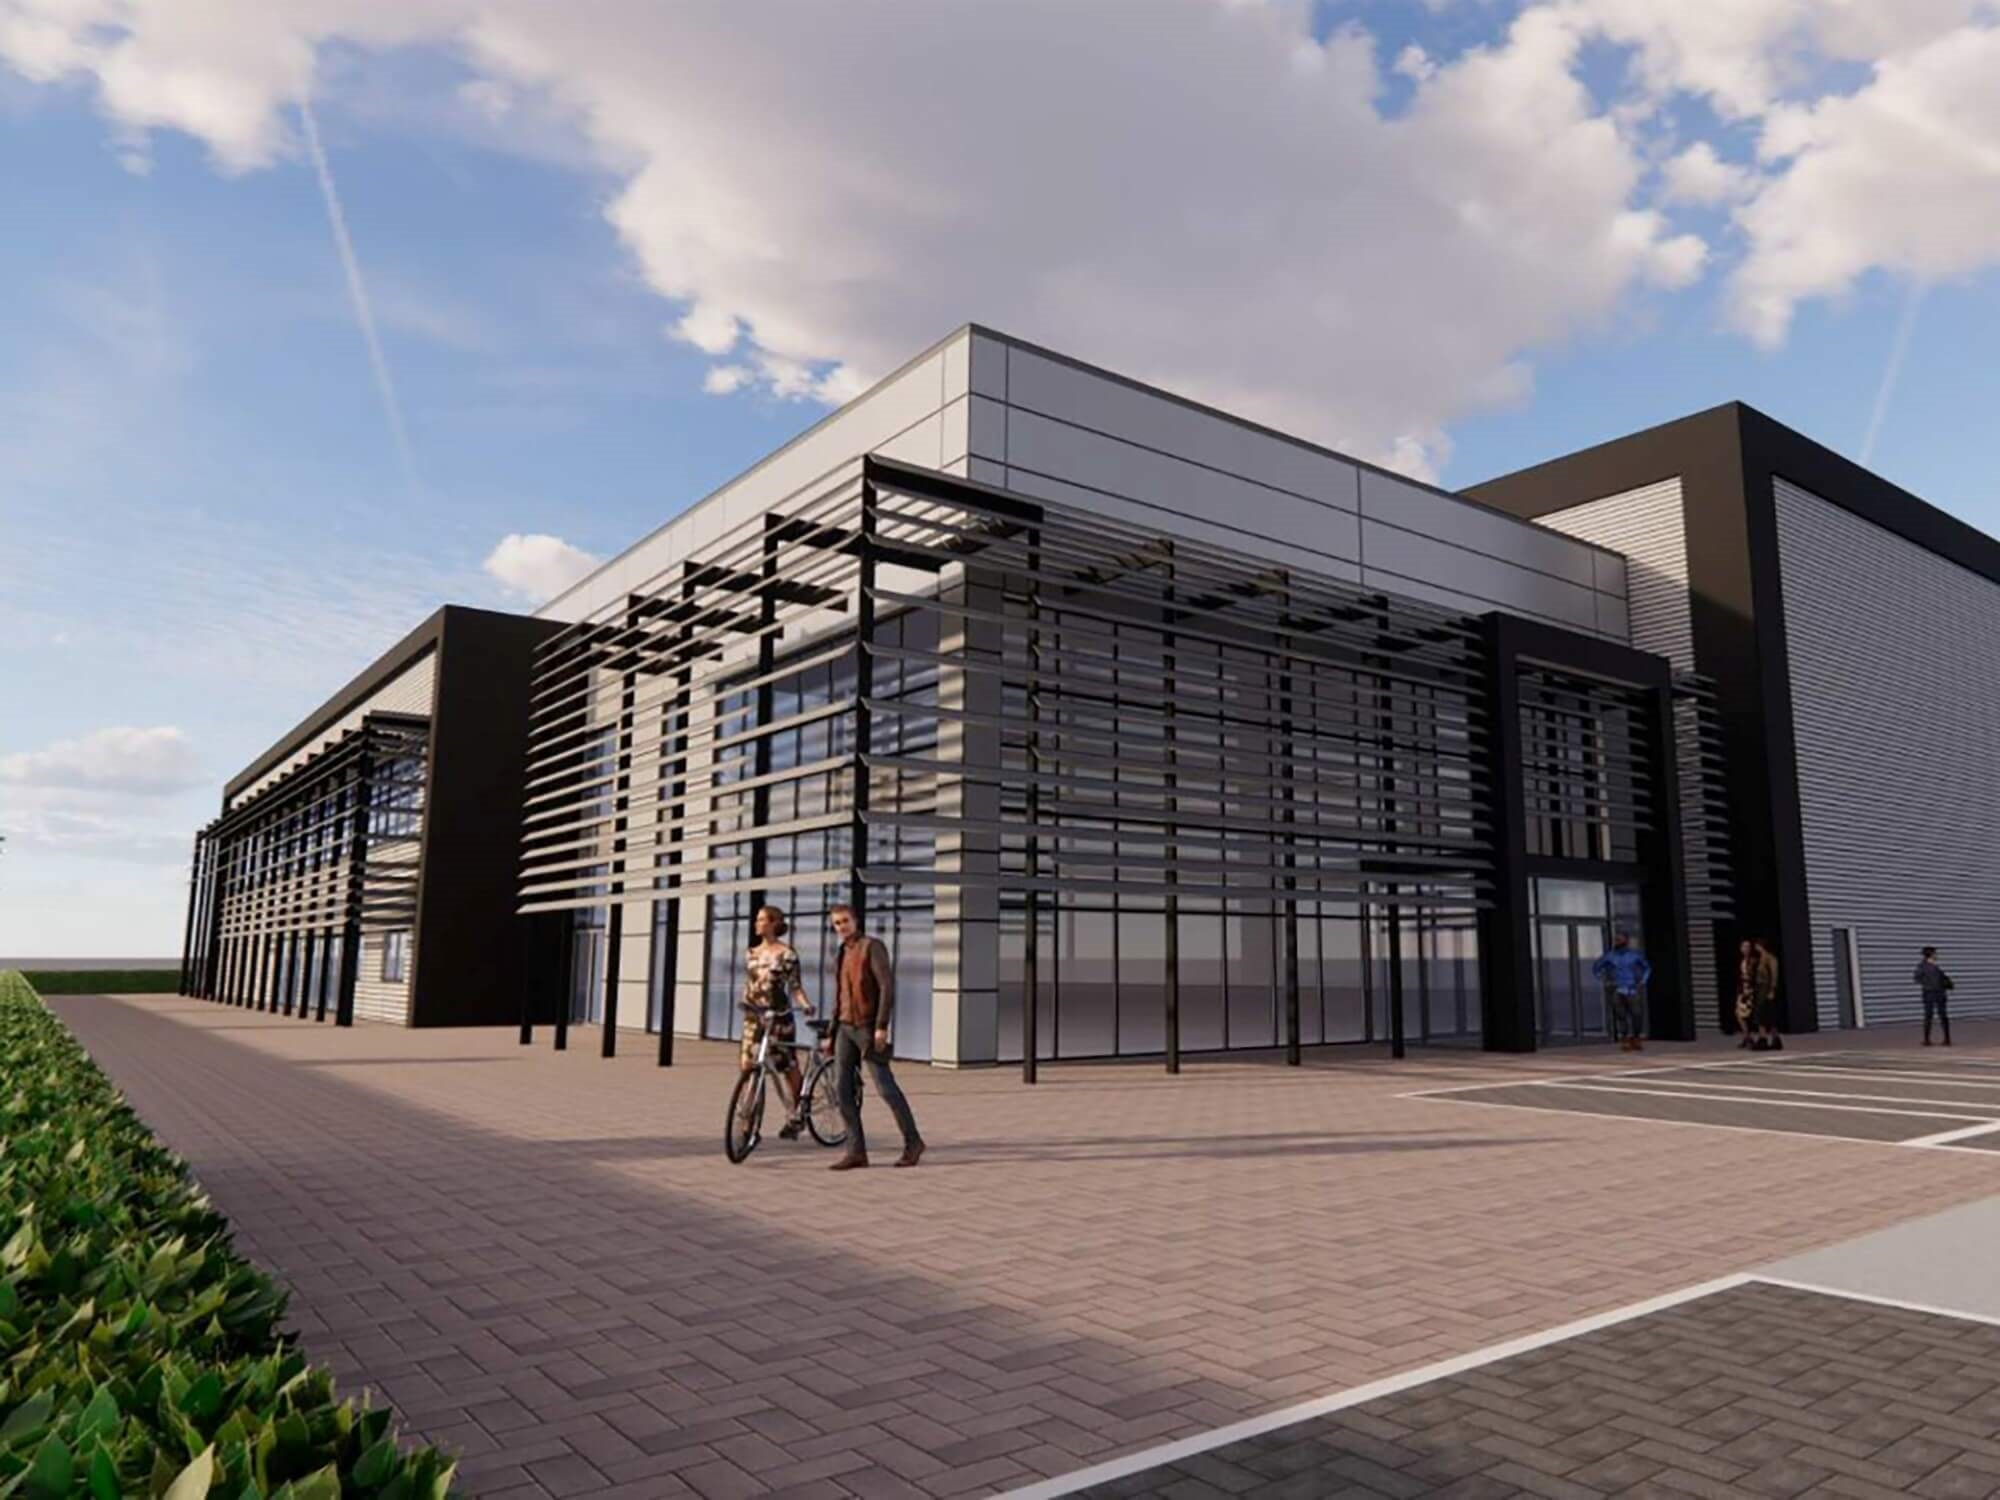 Development of Nuclear Advanced Manufacturing Research Centre (Nuclear AMRC) at Infinity Park in Derby.